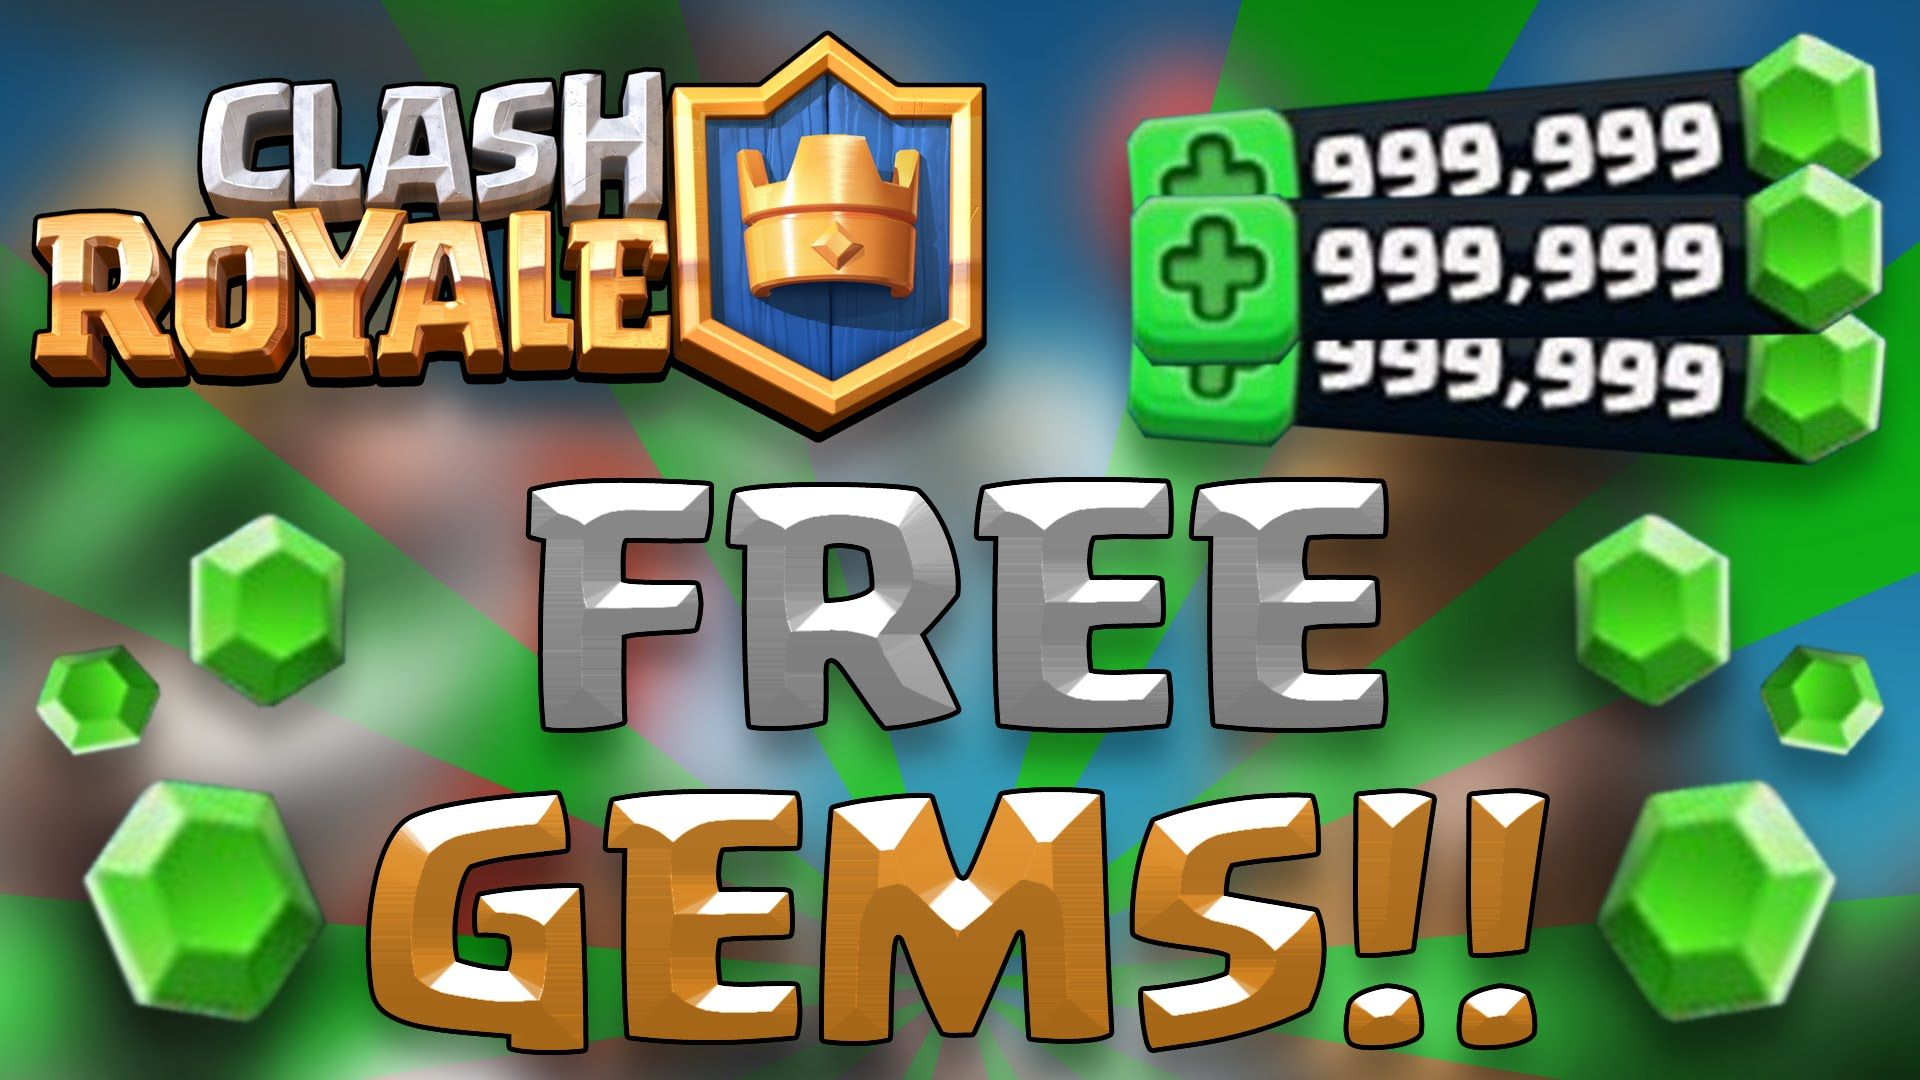 Get Clash Royale Unlimited Gems For Free! Working [October 2020]